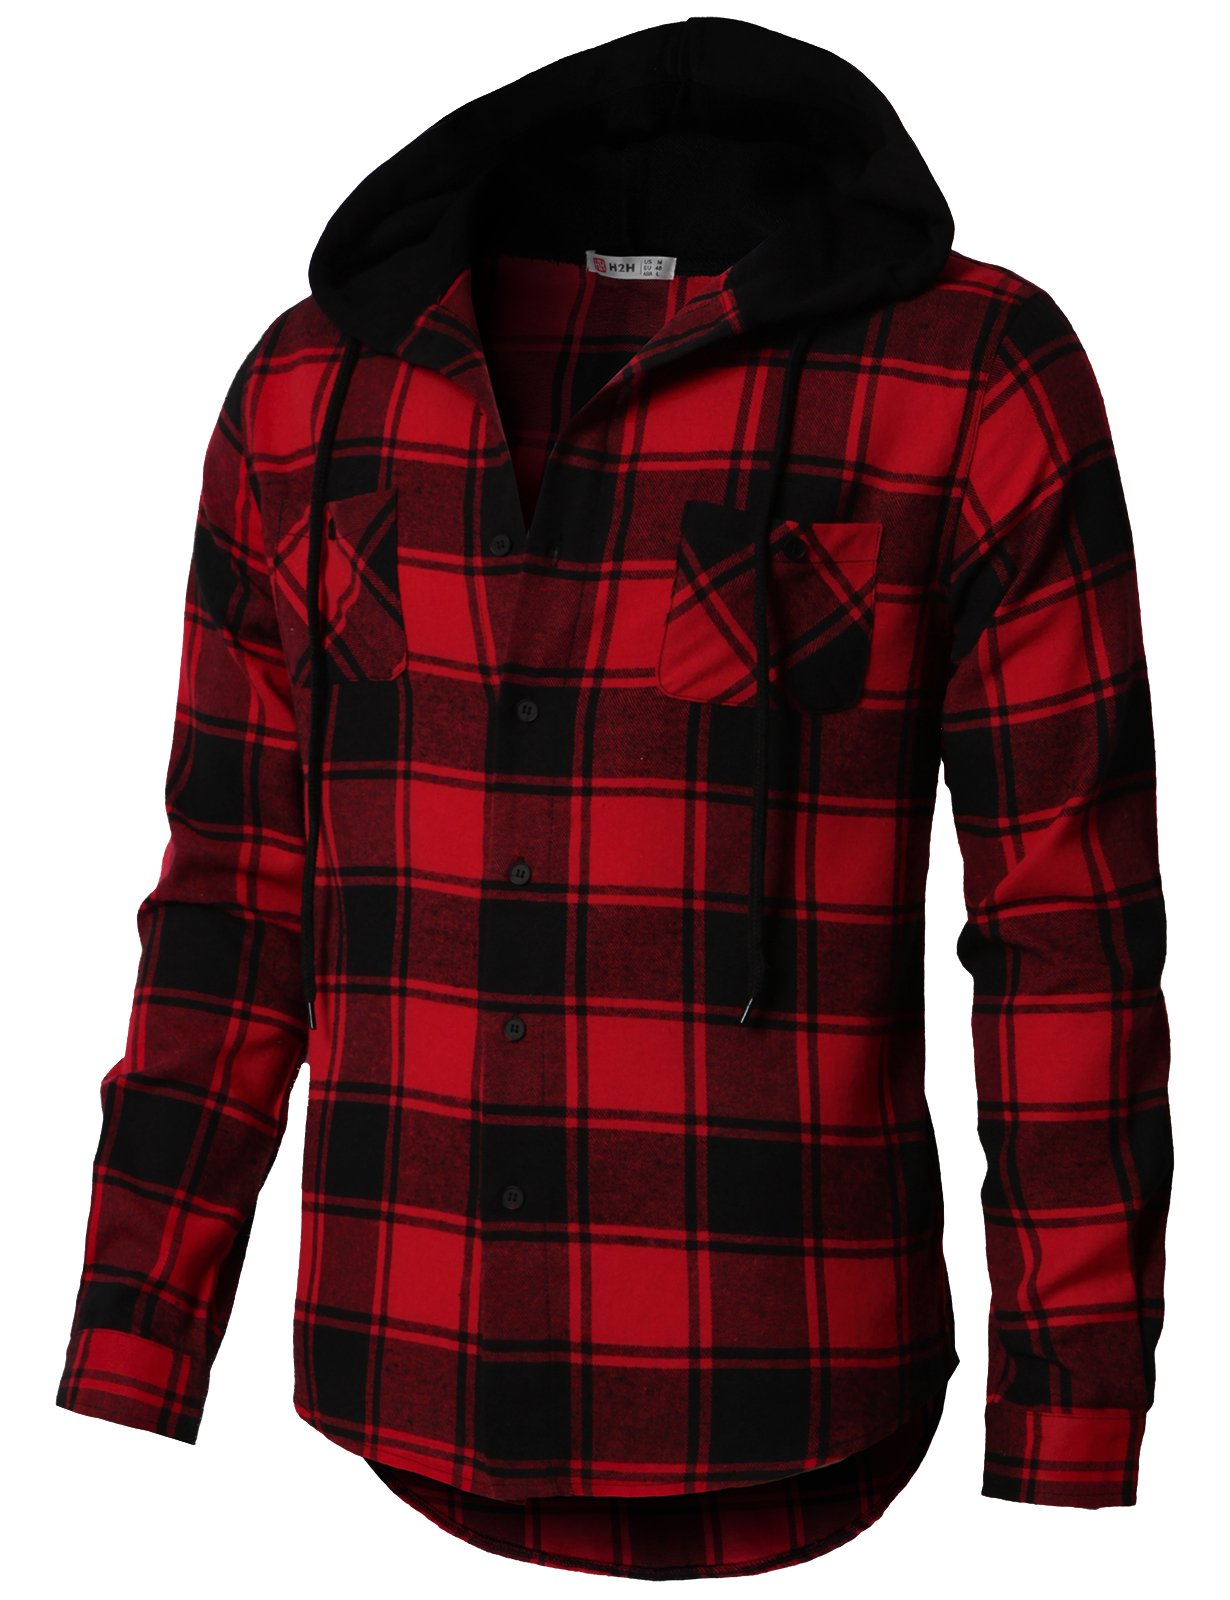 H2H Men's Casual Plaid Long Sleeve Button Down Shirt Hooded Shirts RED US M/Asia L (CMOJA0105)